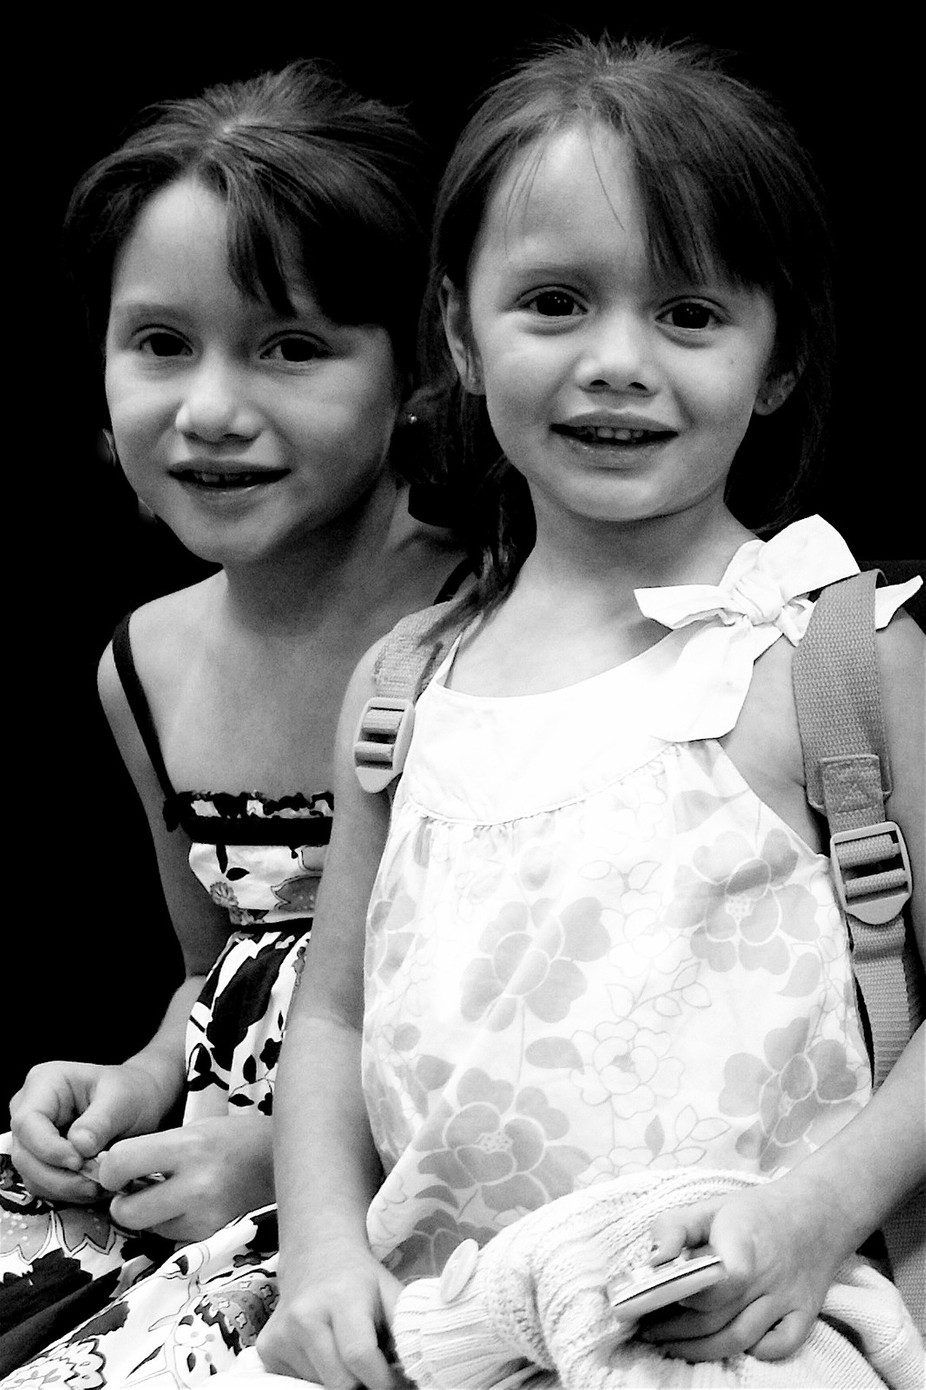 B&W of two little sisters with a shy smile.